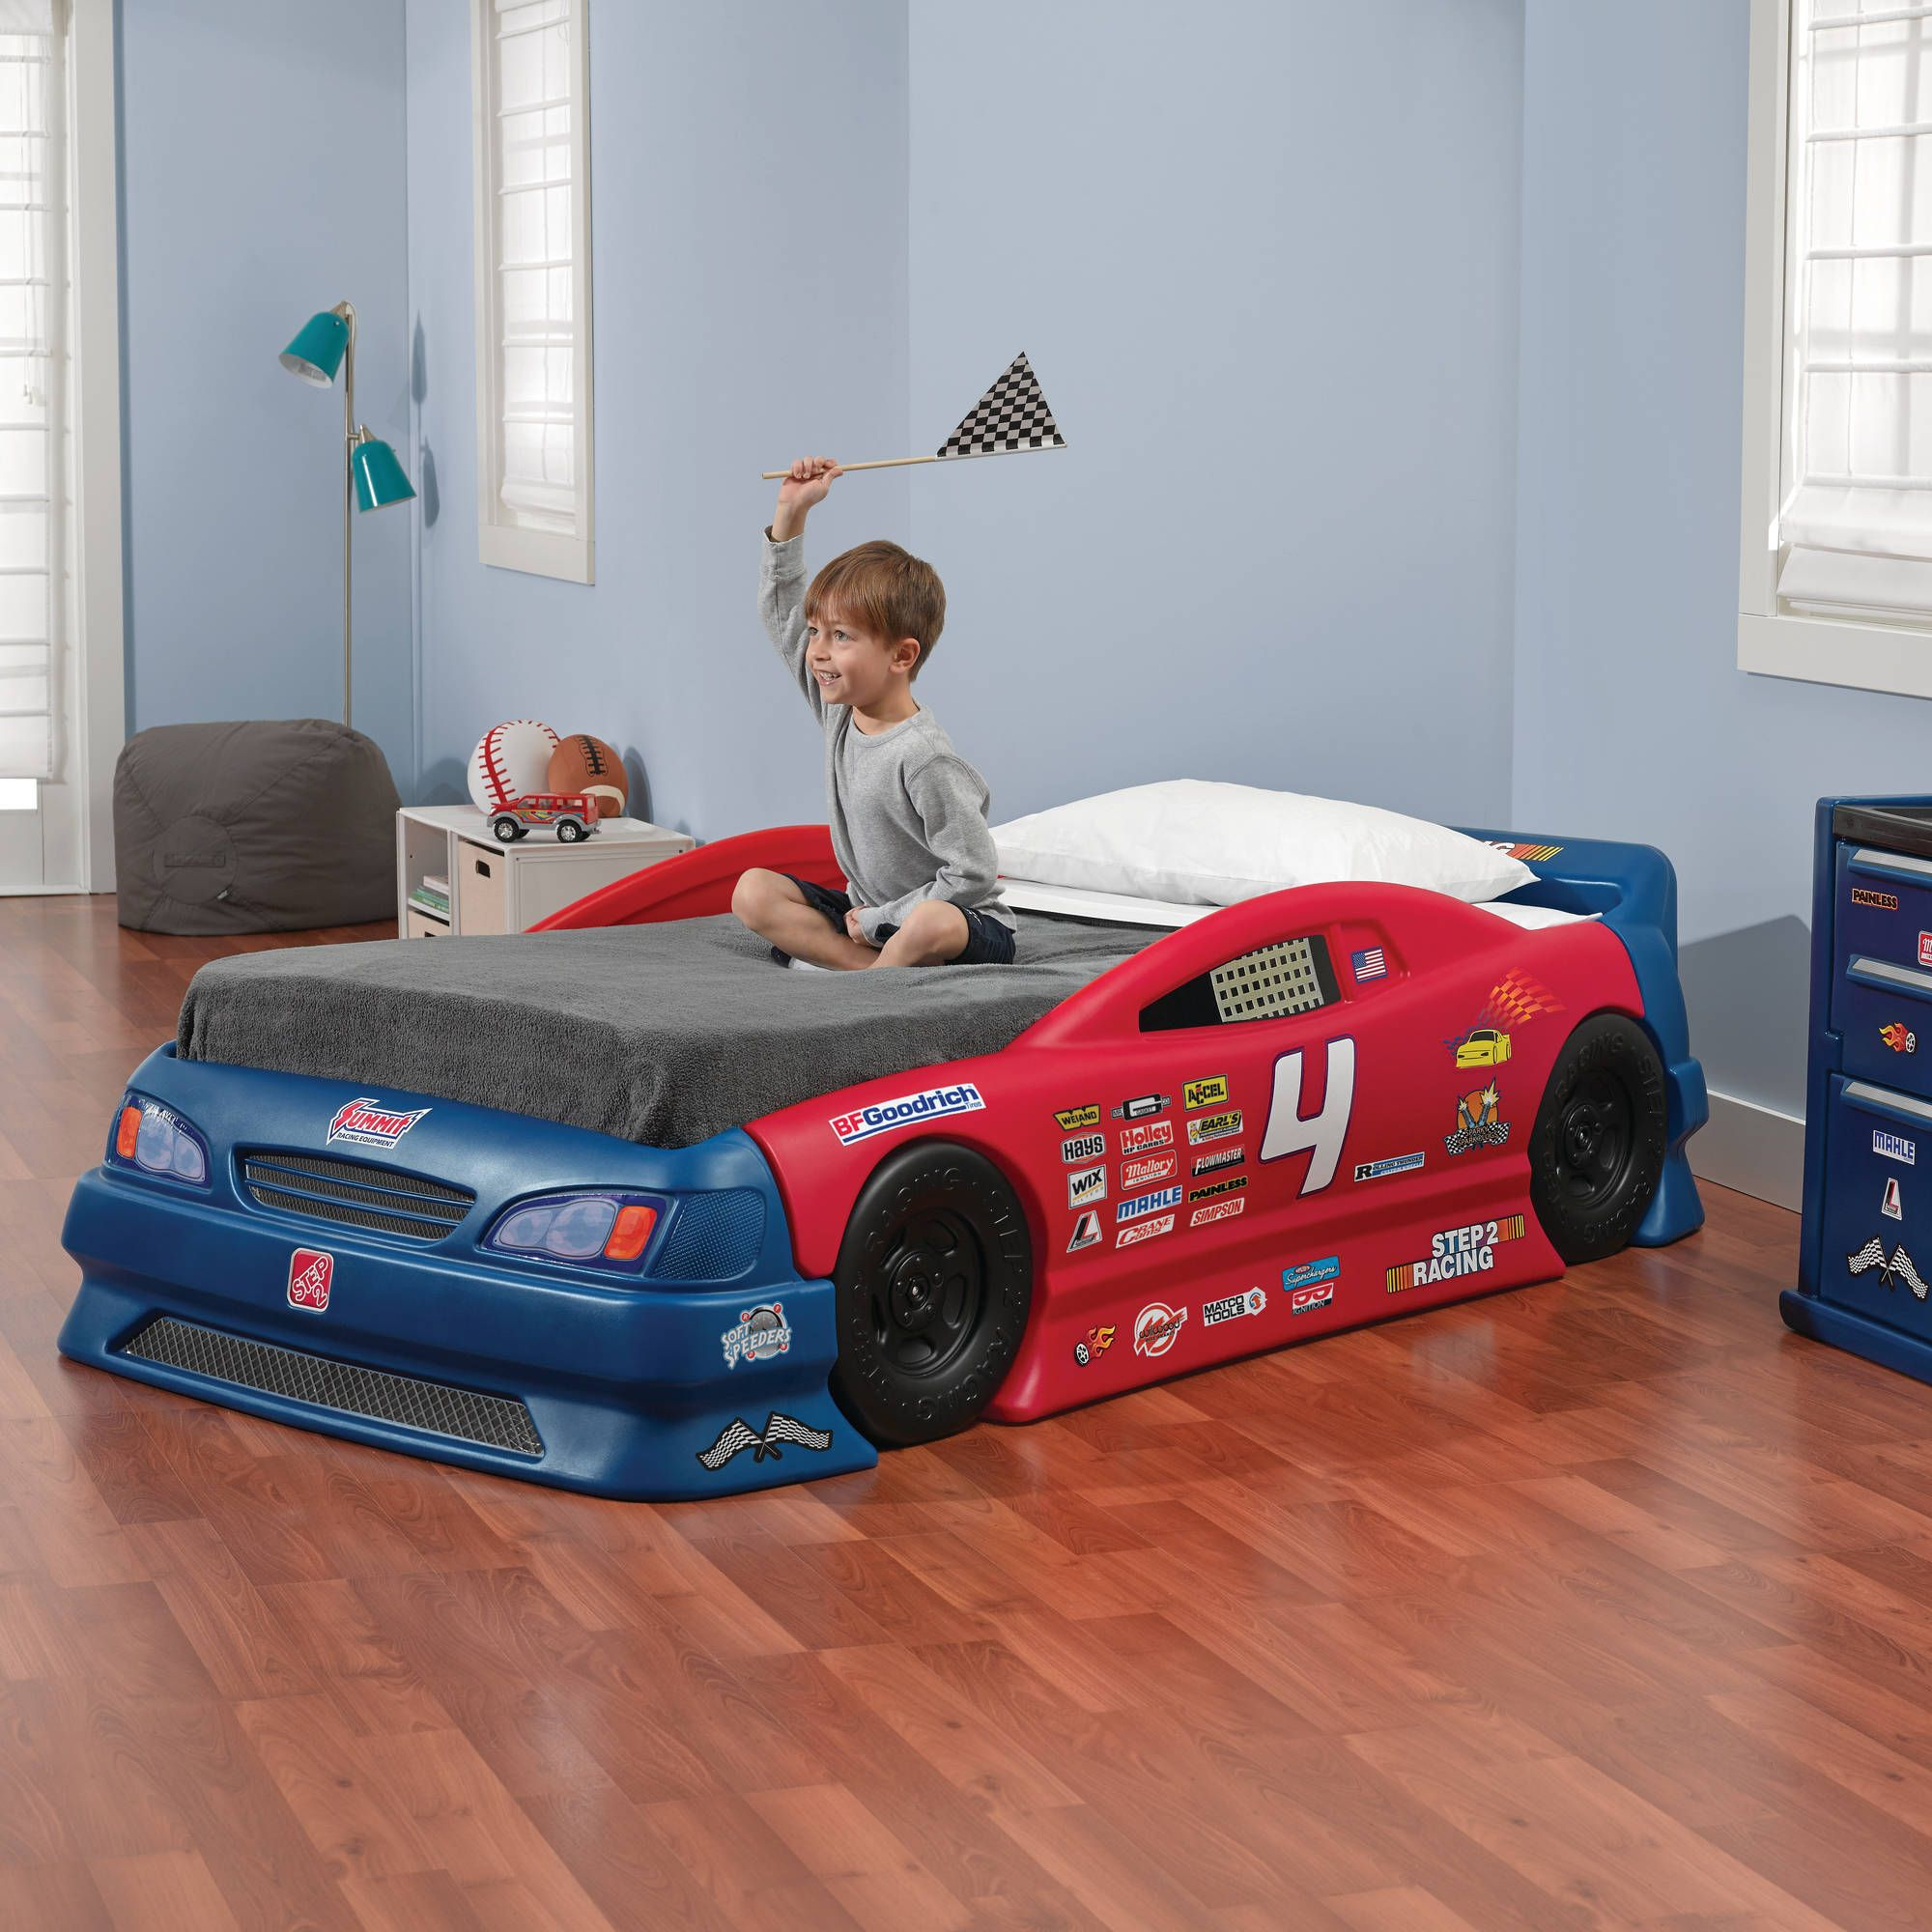 Step2 Stock Car Convertible Toddler To Twin Bed Luxury Kids Bedroom Convertible Bed Kids Bedroom Designs Convertible toddler to twin bed